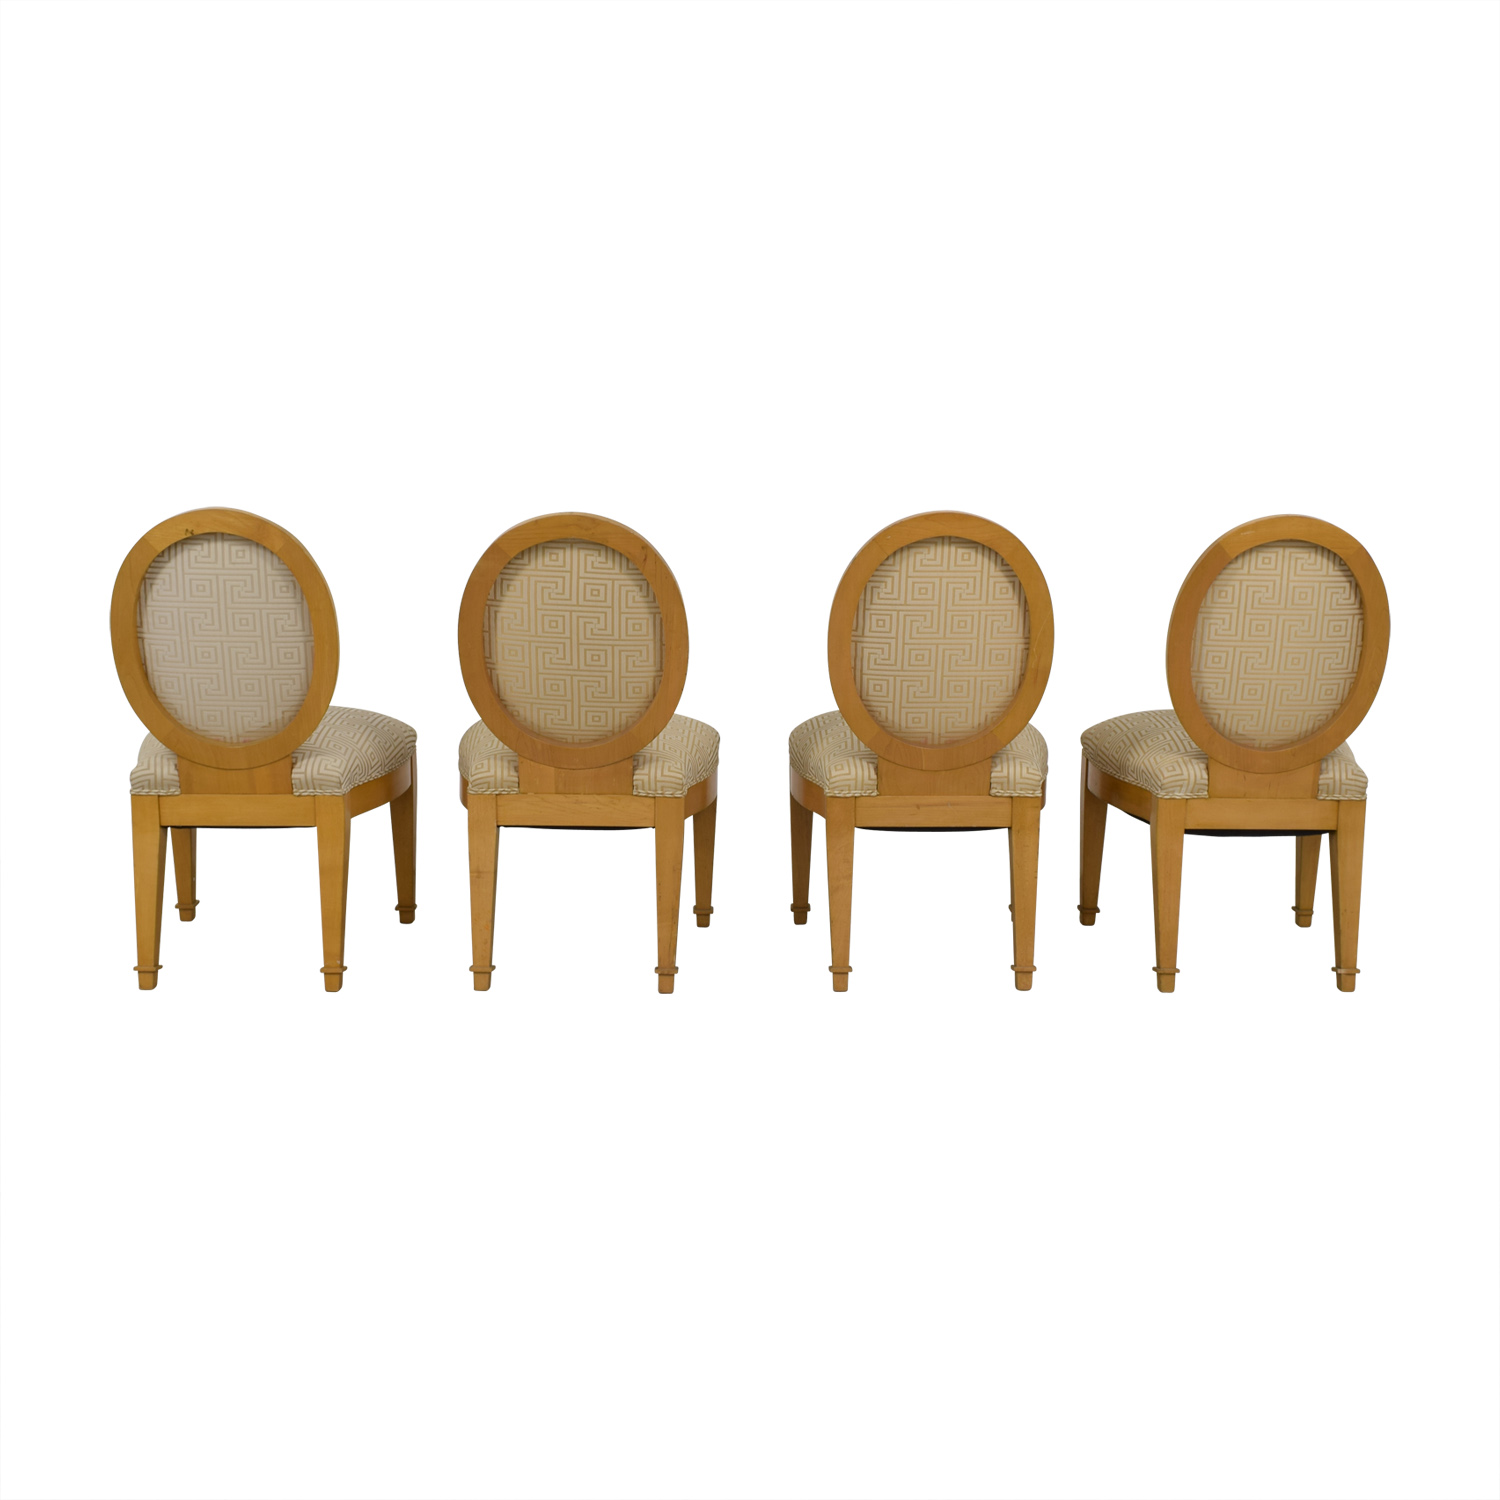 Furniture Masters Furniture Masters Tan and Beige Upholstered Dining Chairs second hand